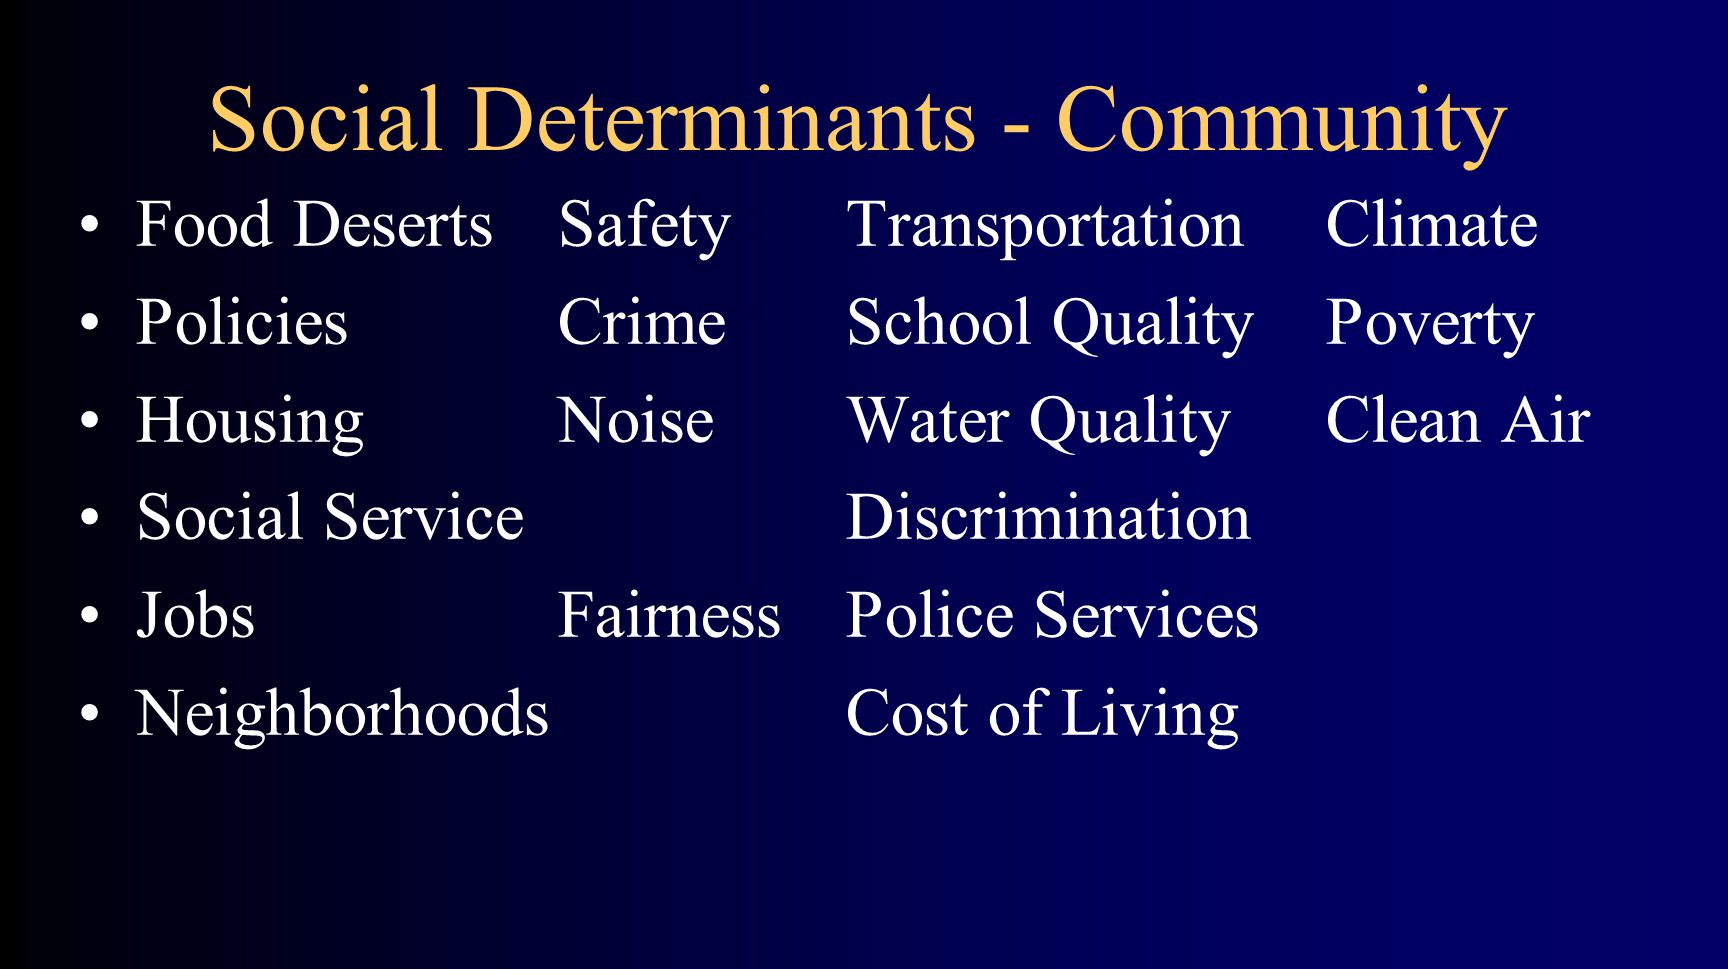 Social Determinants - Community Food DesertsSafetyTransportationClimate PoliciesCrime School QualityPoverty HousingNoiseWater QualityClean Air Social ServiceDiscrimination JobsFairnessPolice Services NeighborhoodsCost of Living